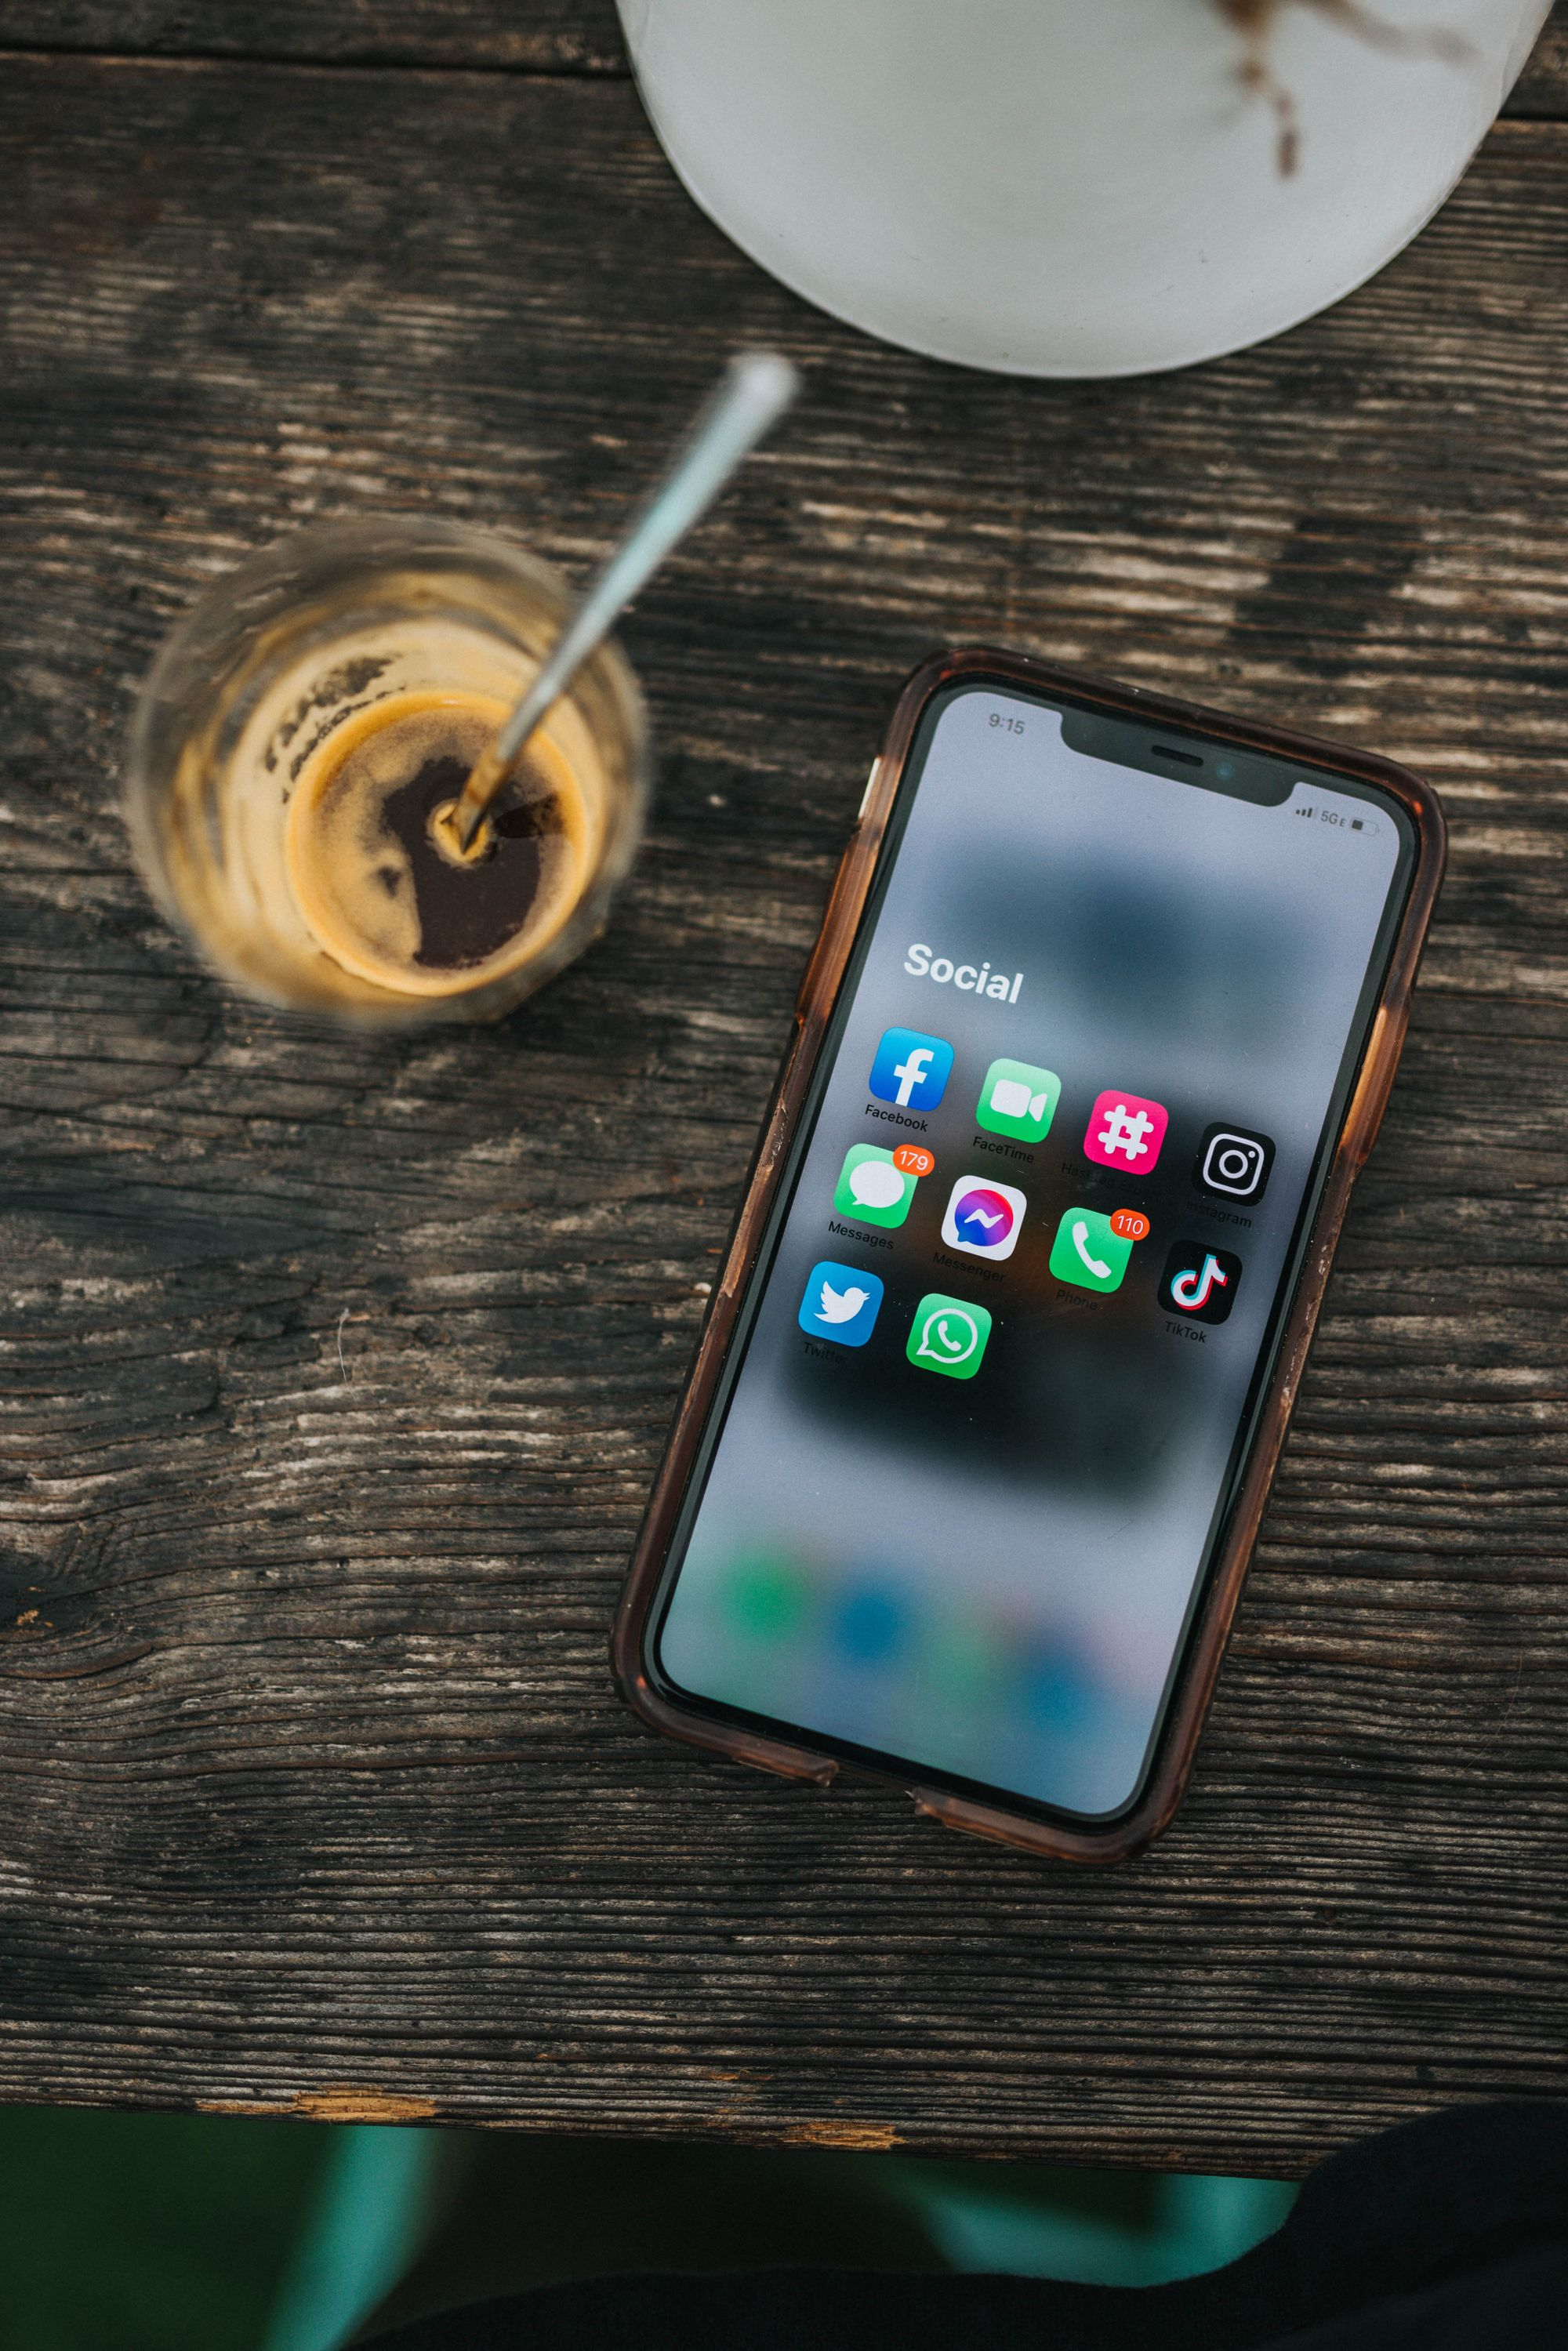 social-media-apps-on-iphone